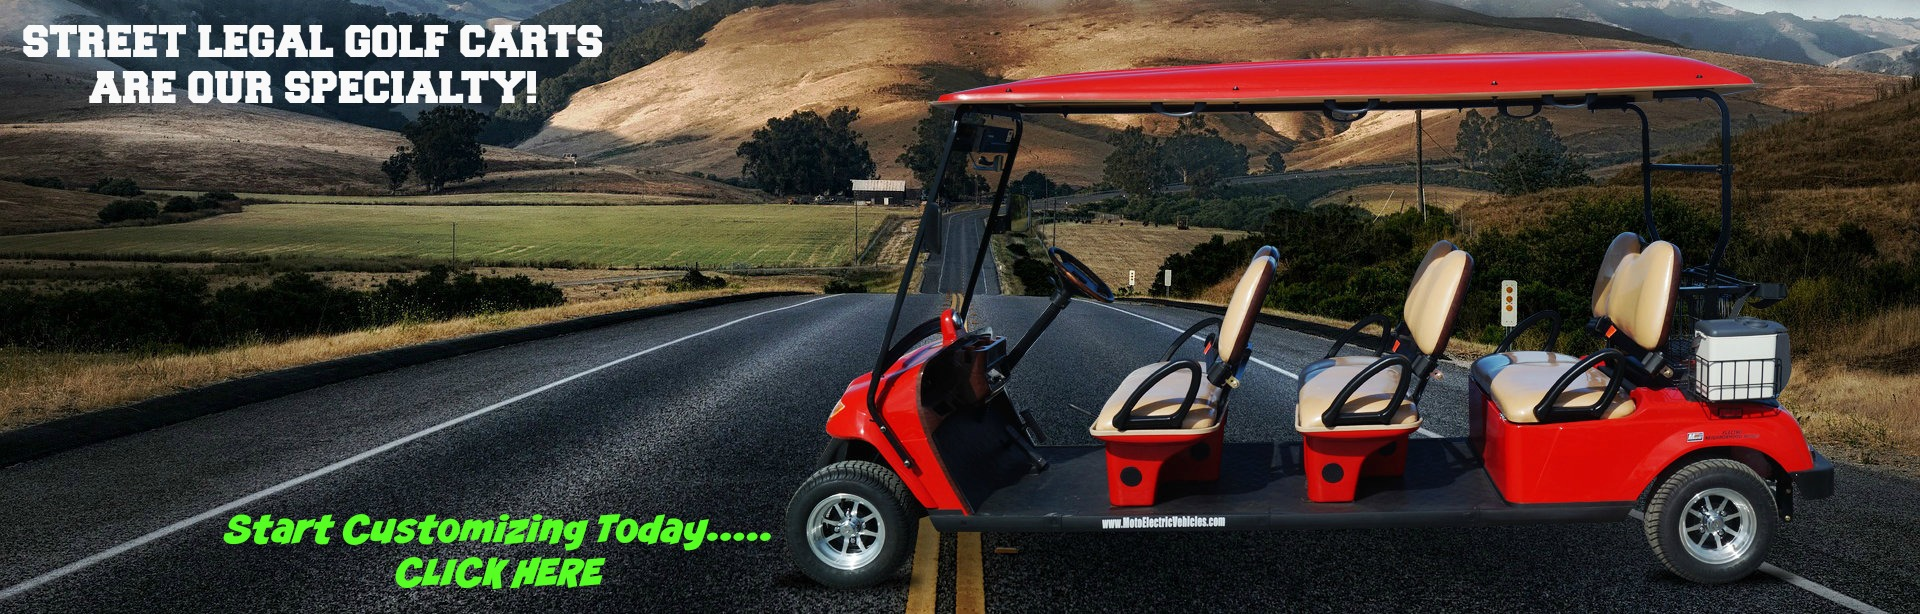 Street Legal Golf Carts for Sale